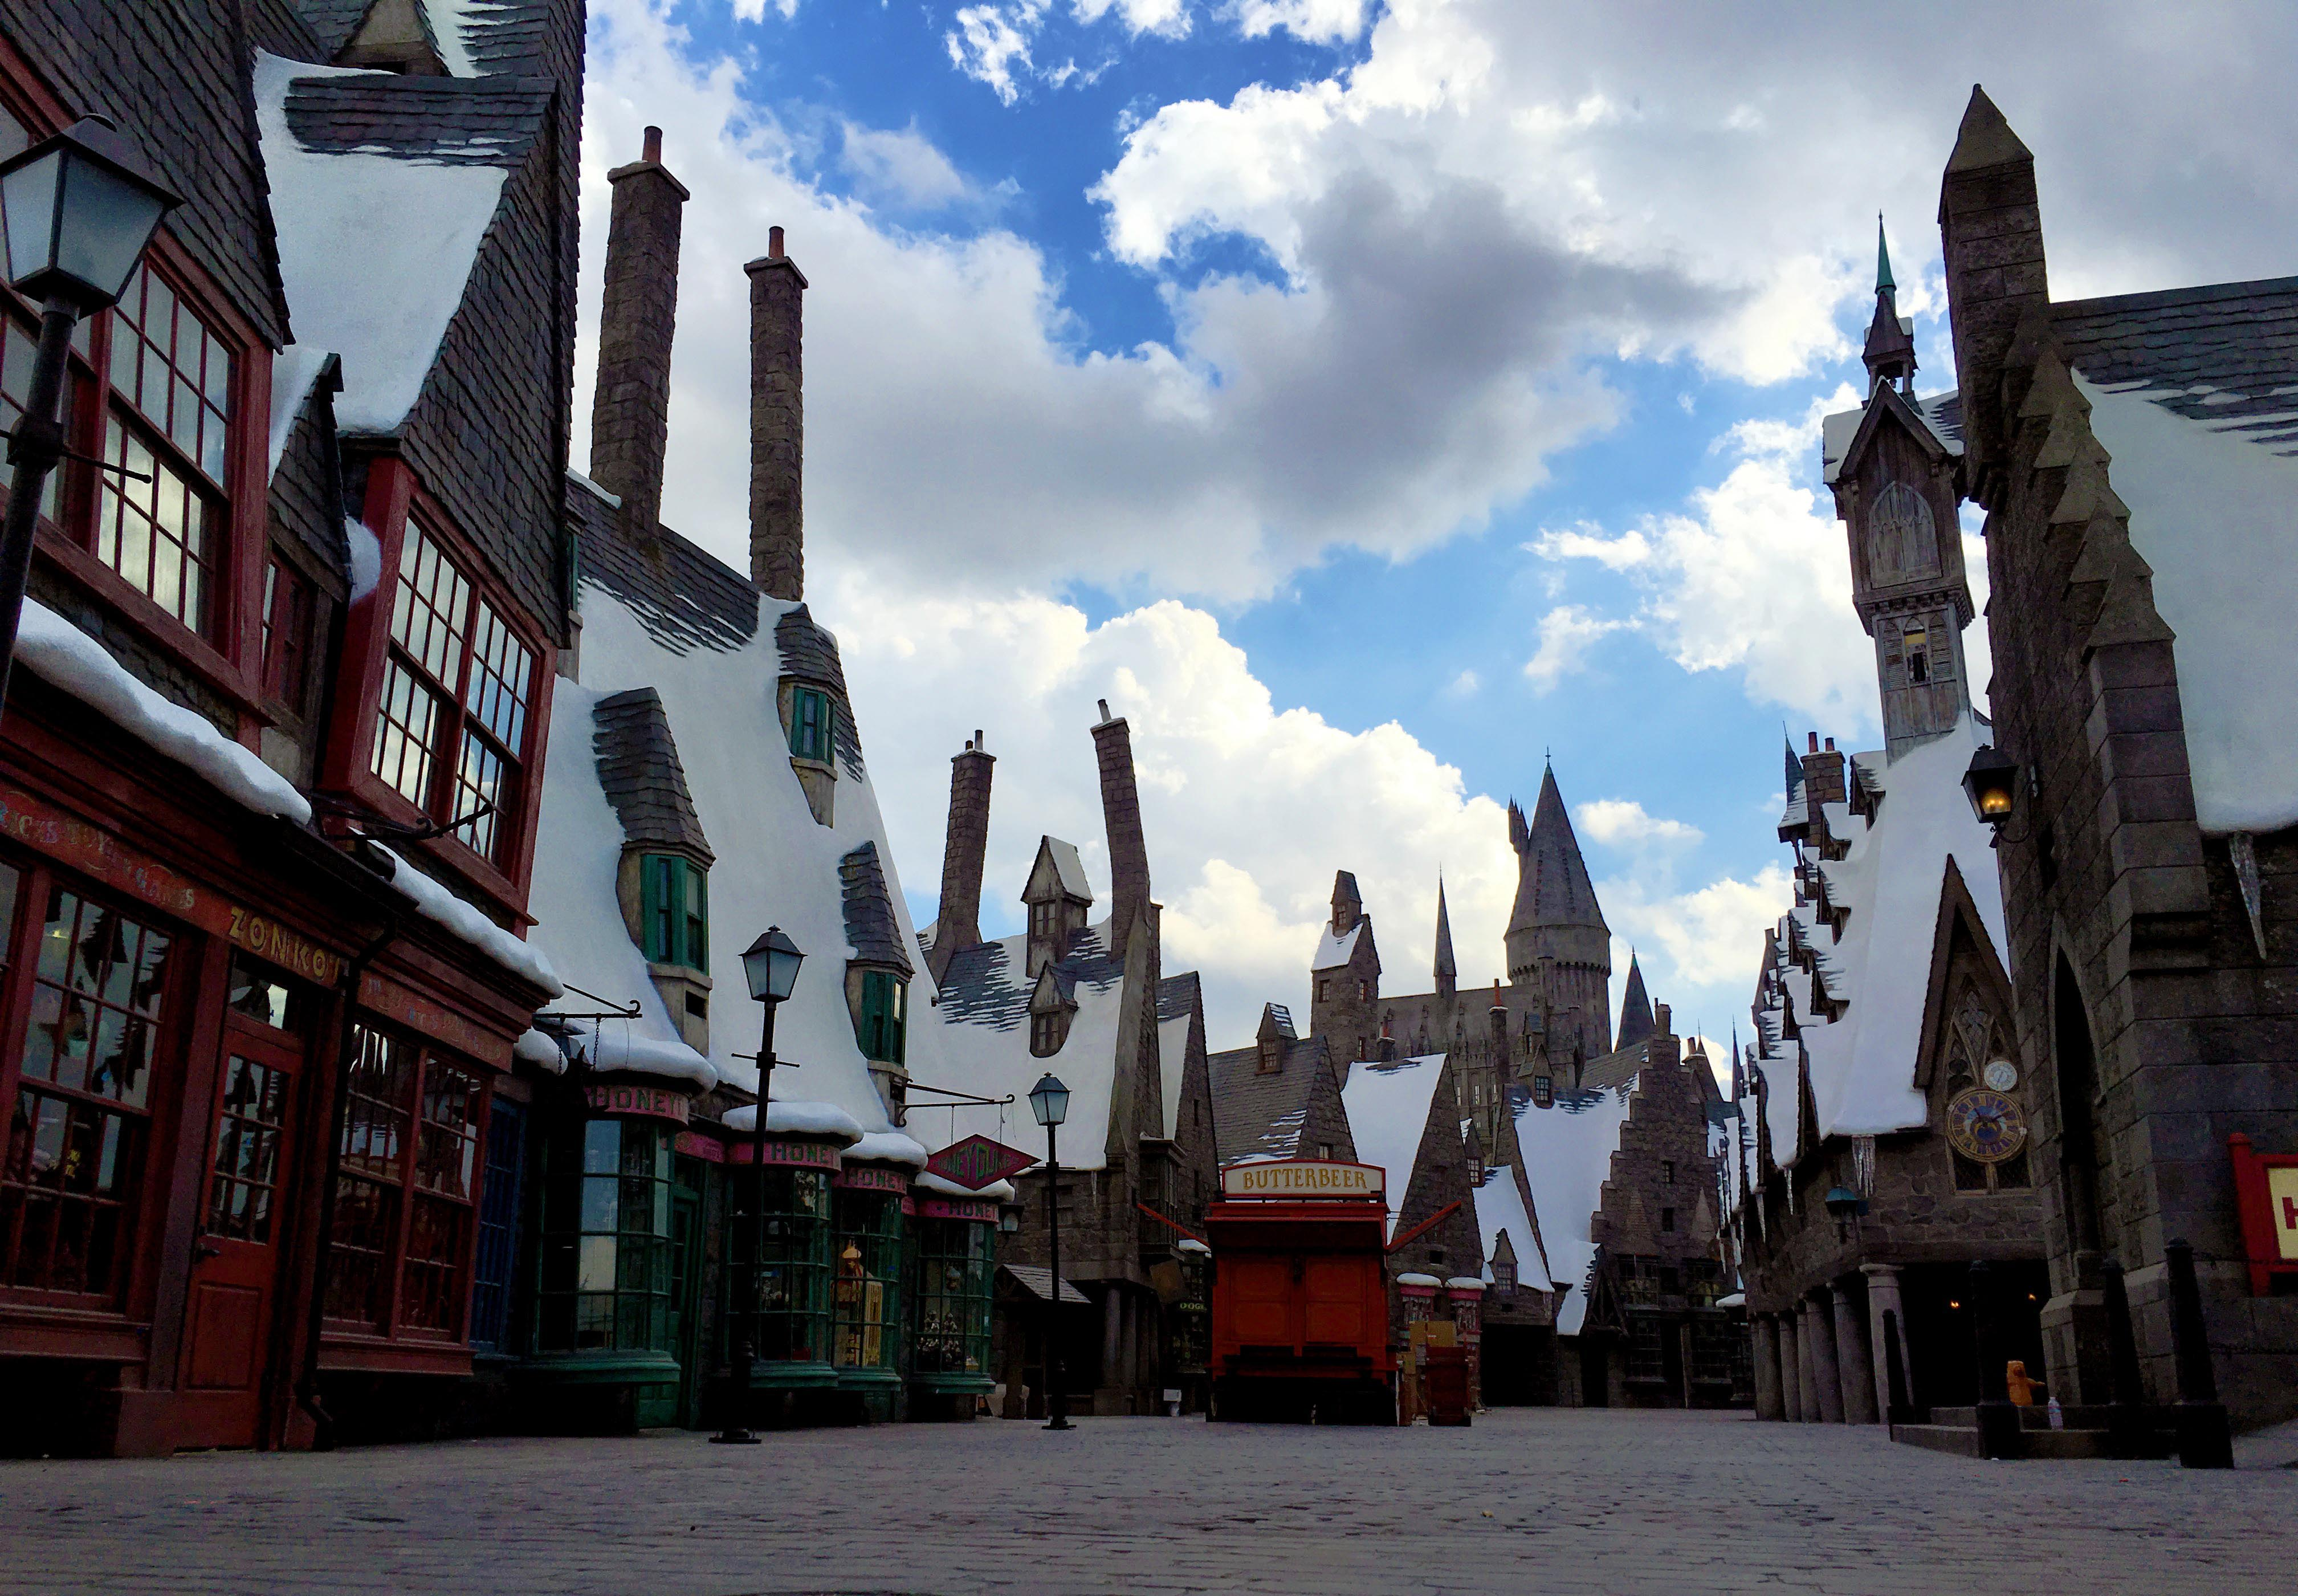 Hogsmeade village, and the Butterbeer cart